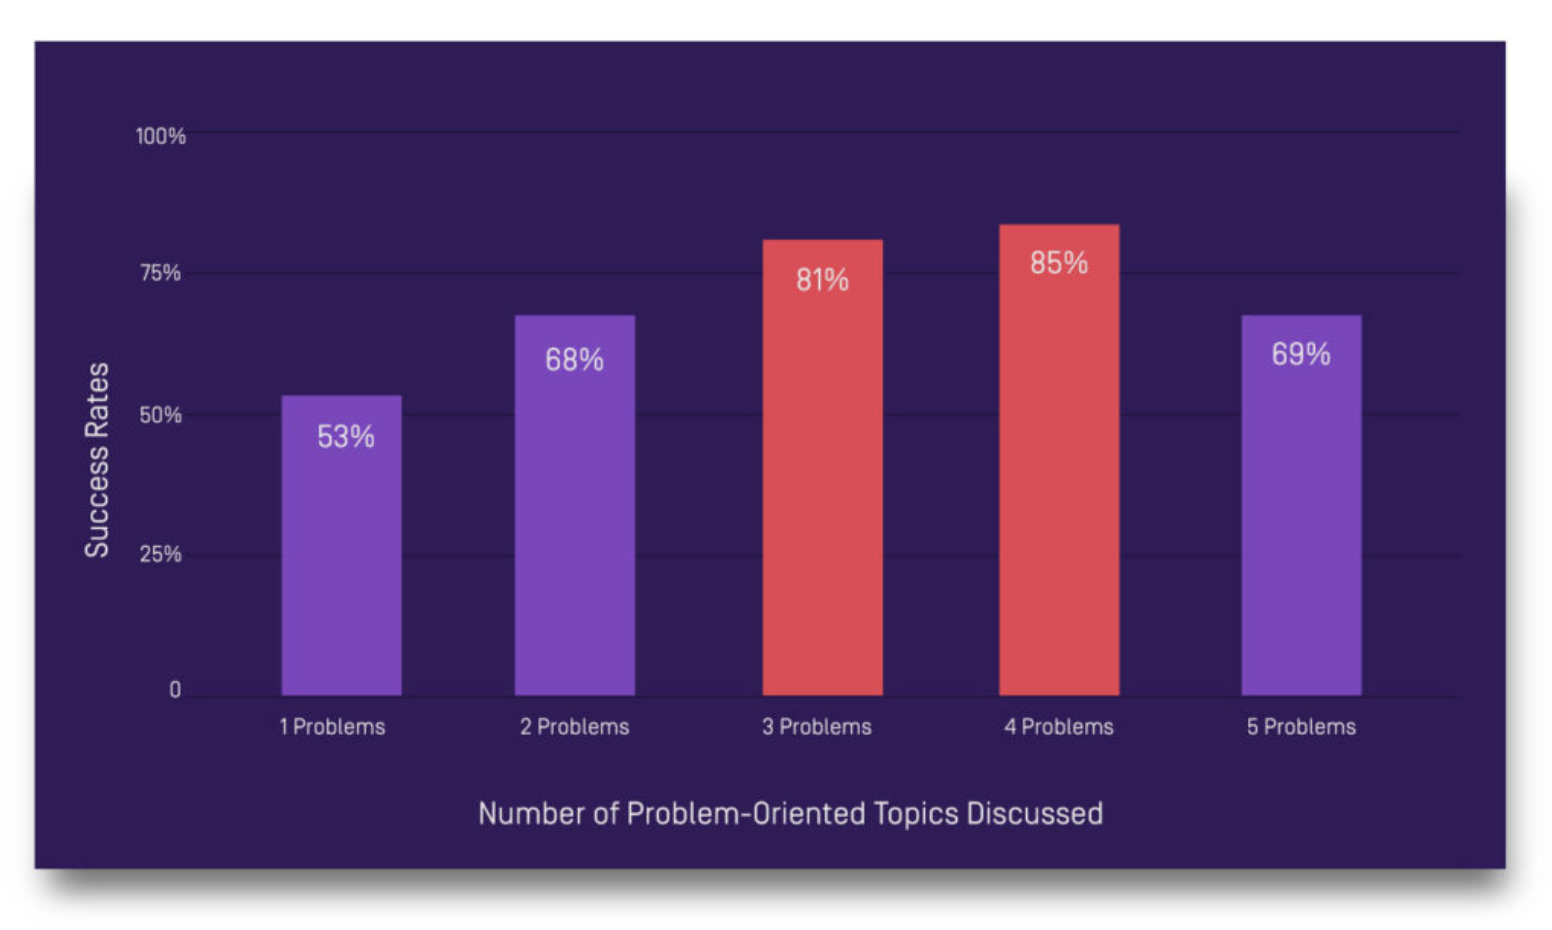 number of problem-oriented topics addressed in sales calls.